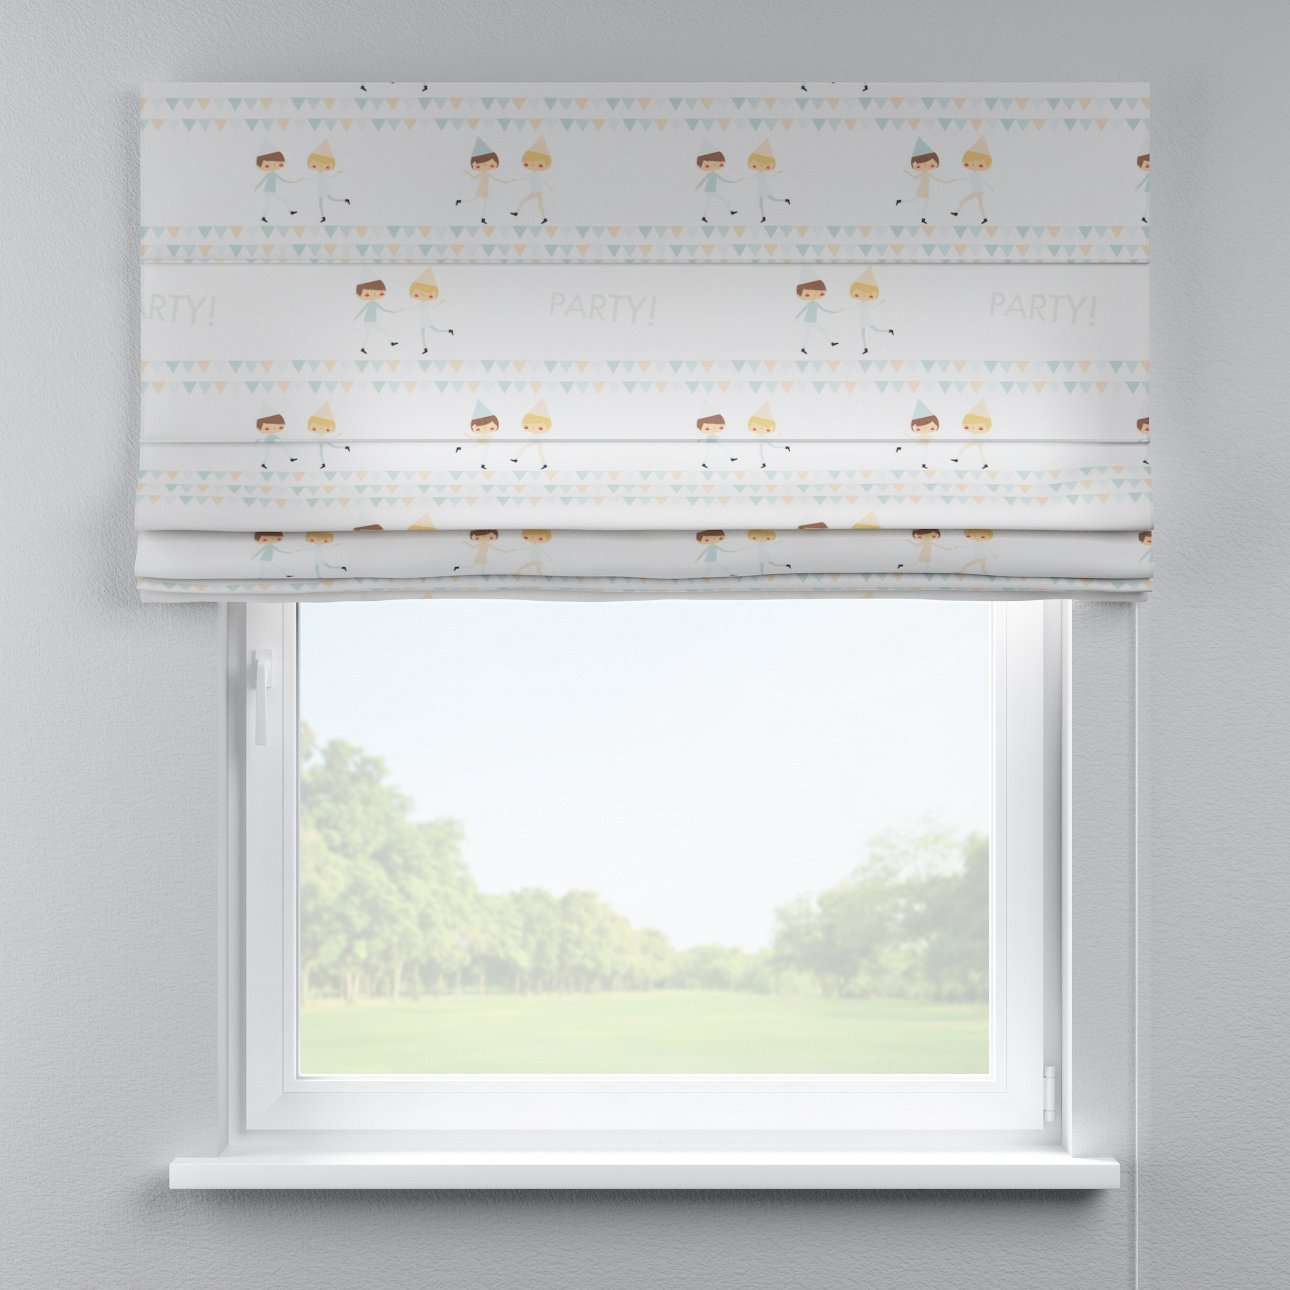 Capri roman blind 80 x 170 cm (31.5 x 67 inch) in collection Apanona, fabric: 151-01